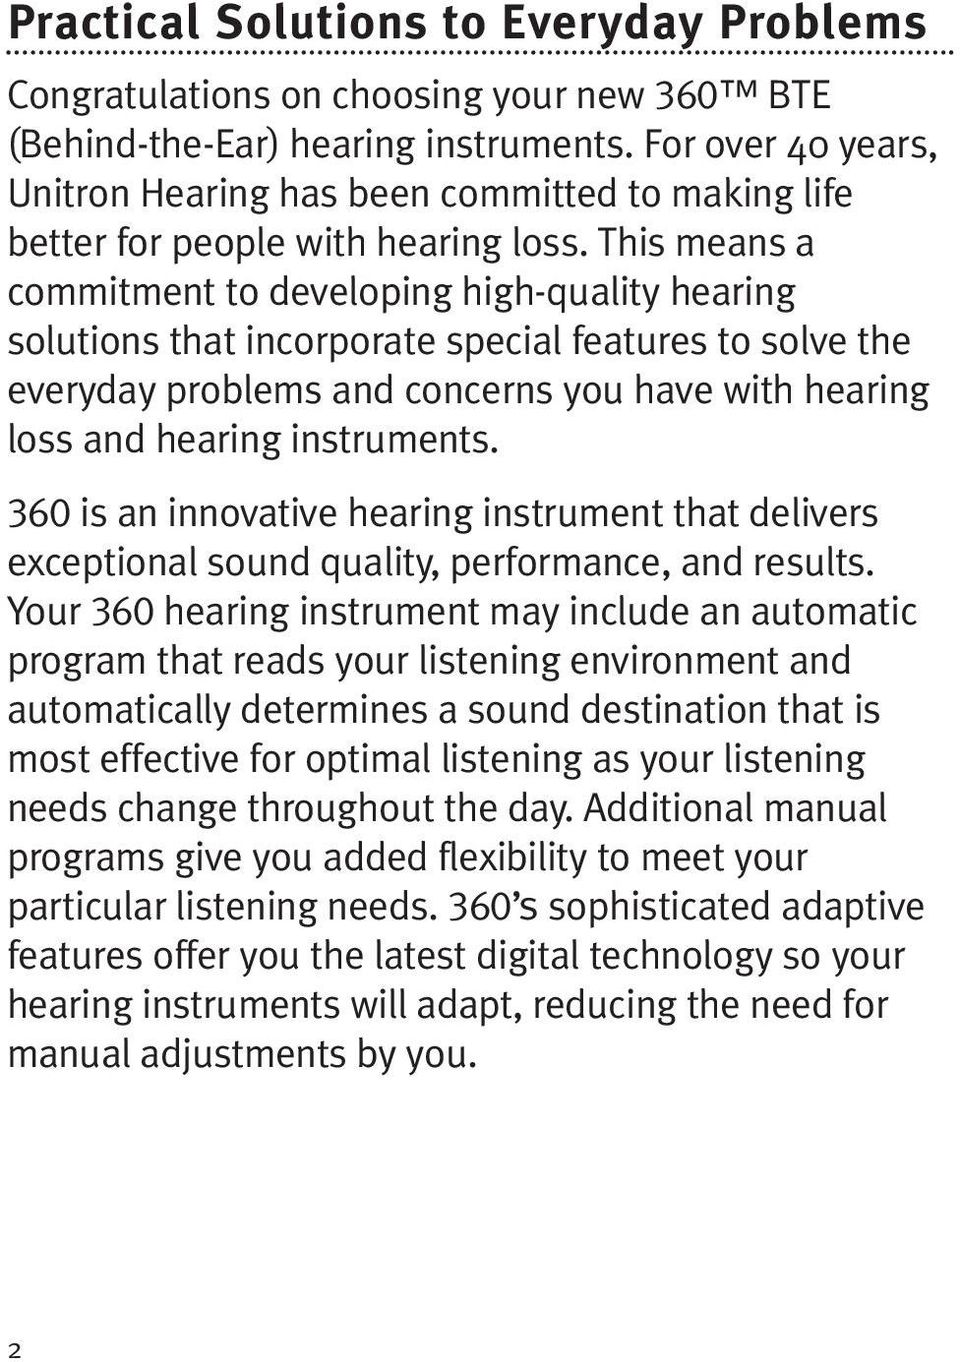 This means a commitment to developing high-quality hearing solutions that incorporate special features to solve the everyday problems and concerns you have with hearing loss and hearing instruments.